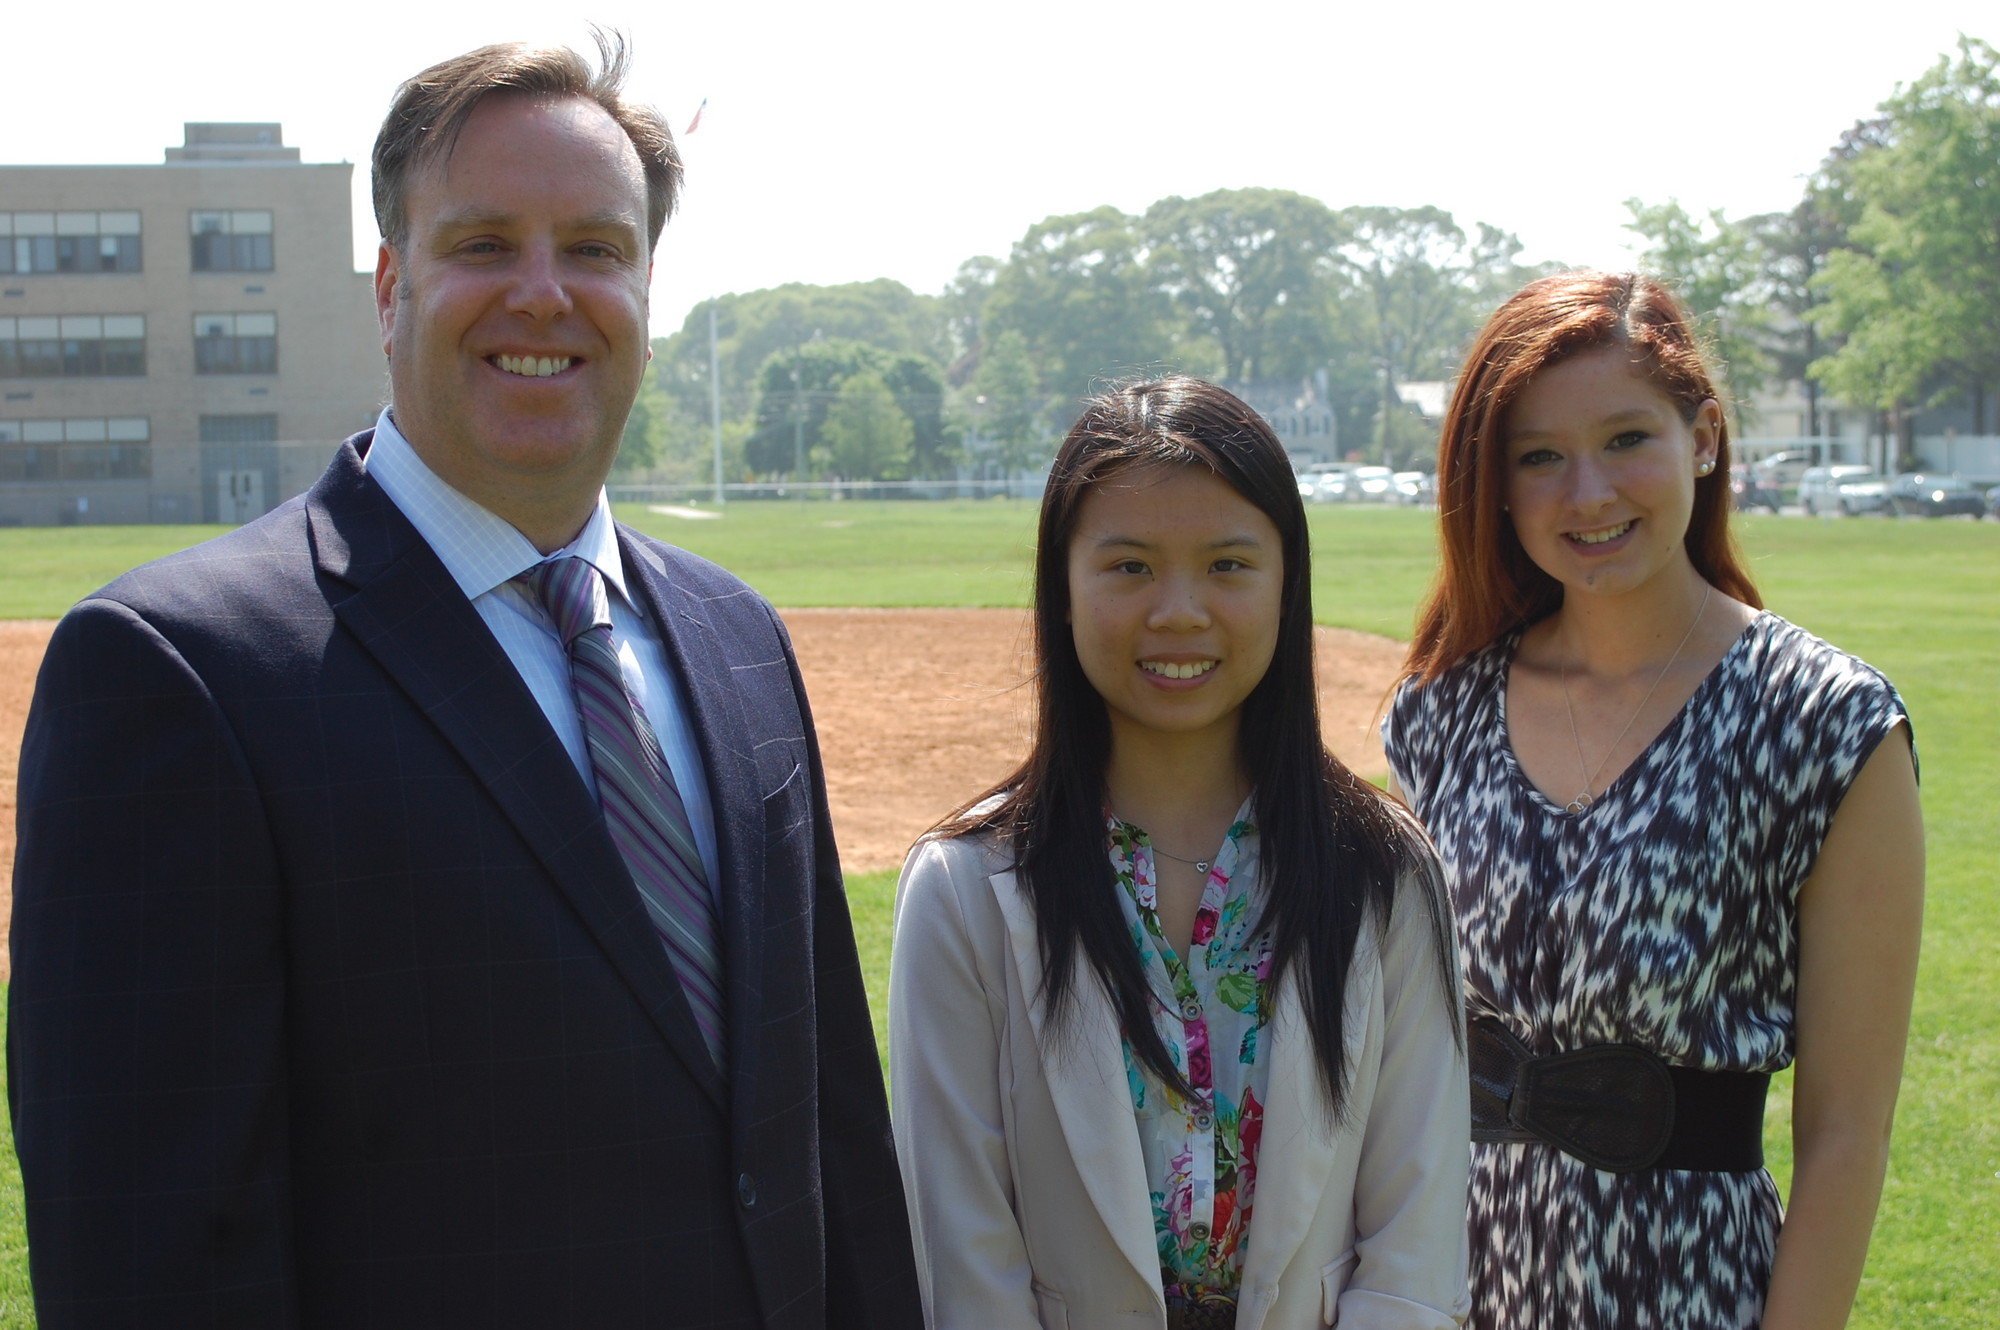 Michelle Chen, center, and Angelica Caluori are the valedictorian and salutatorian, respectively, of North High School�s class of 2013. They are joined by Superintendent Dr. Bill Heidenreich.